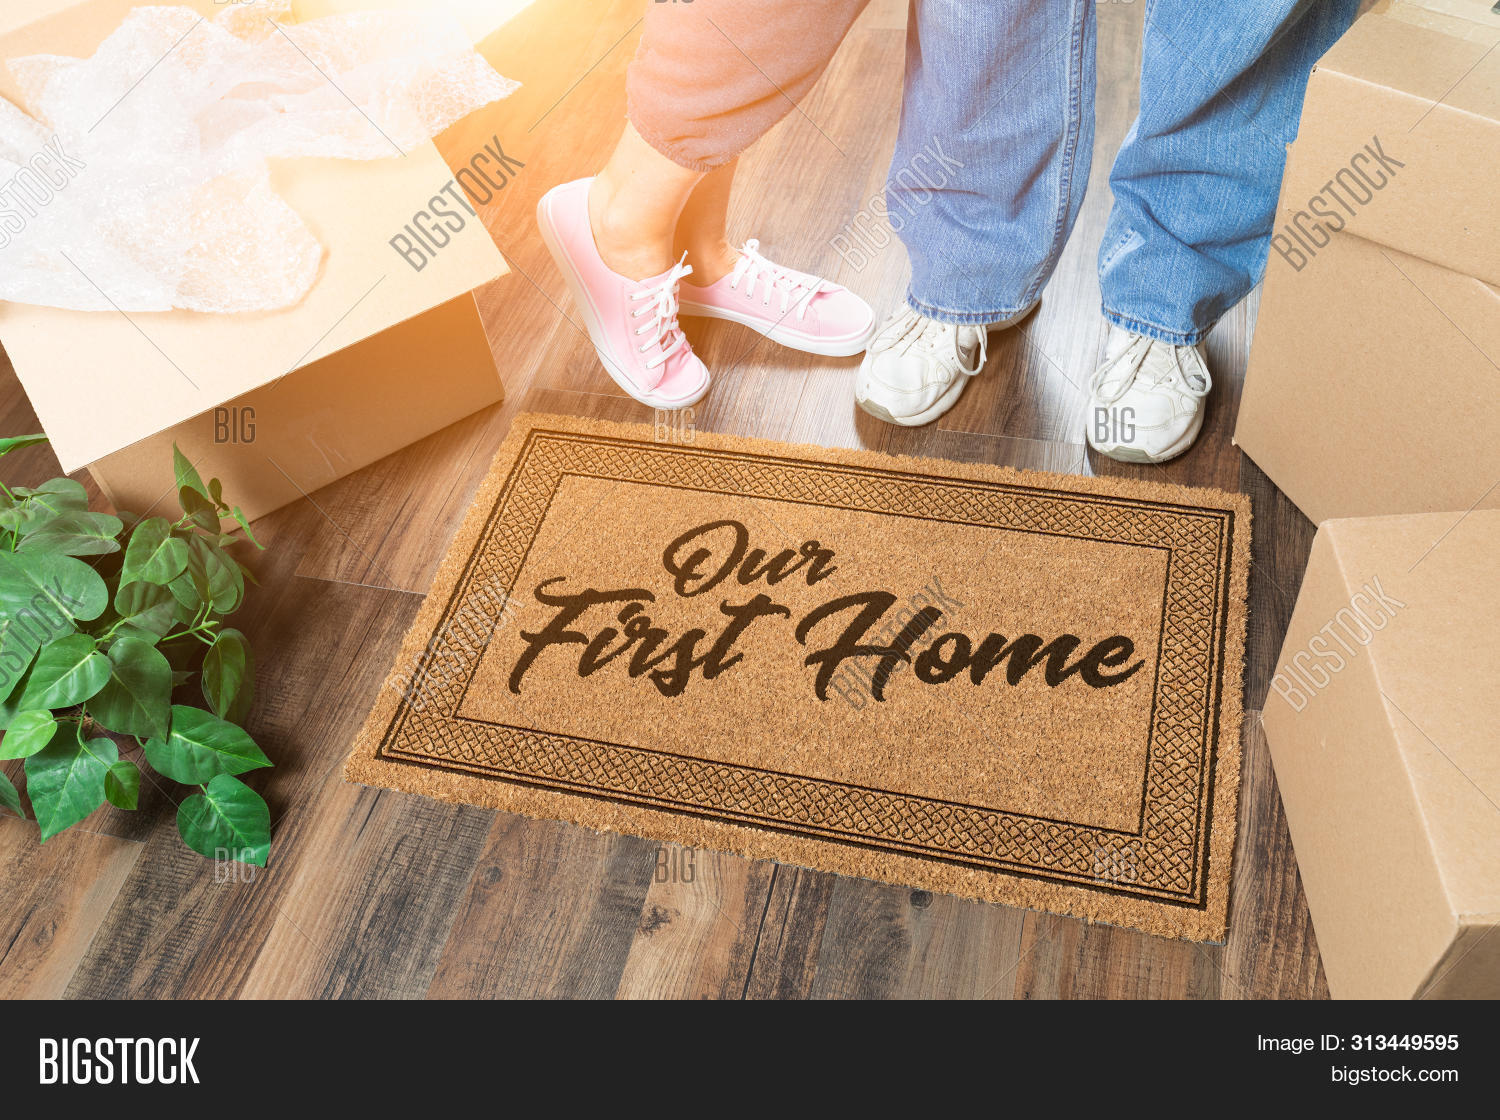 boxes,brown,couple,door mat,doormat,estate,feet,female,first home,first house,first time buyer,floor,floor mat,greeting,home,house,lifestyle,male,man,married,mat,matt,moving,moving boxes,moving in,new,new home,new house,object,our first home,people,real,real estate,shoes,sign,standing,unpacking,welcome,welcome mat,woman,wood